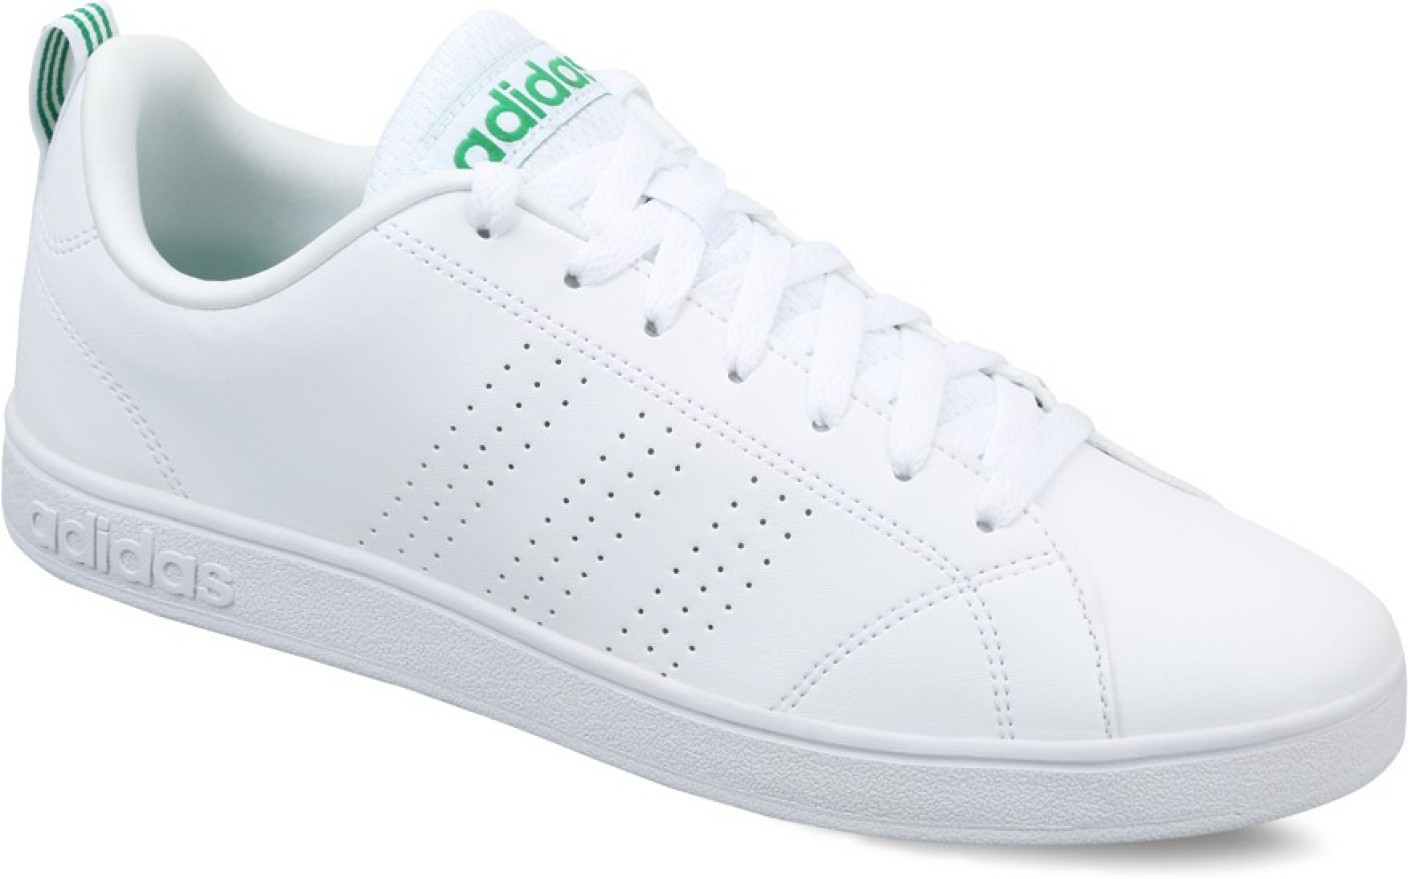 ADIDAS NEO ADVANTAGE CLEAN VS Sneakers For Men - Buy FTWWHT/FTWWHT/GREEN Color ADIDAS NEO ...